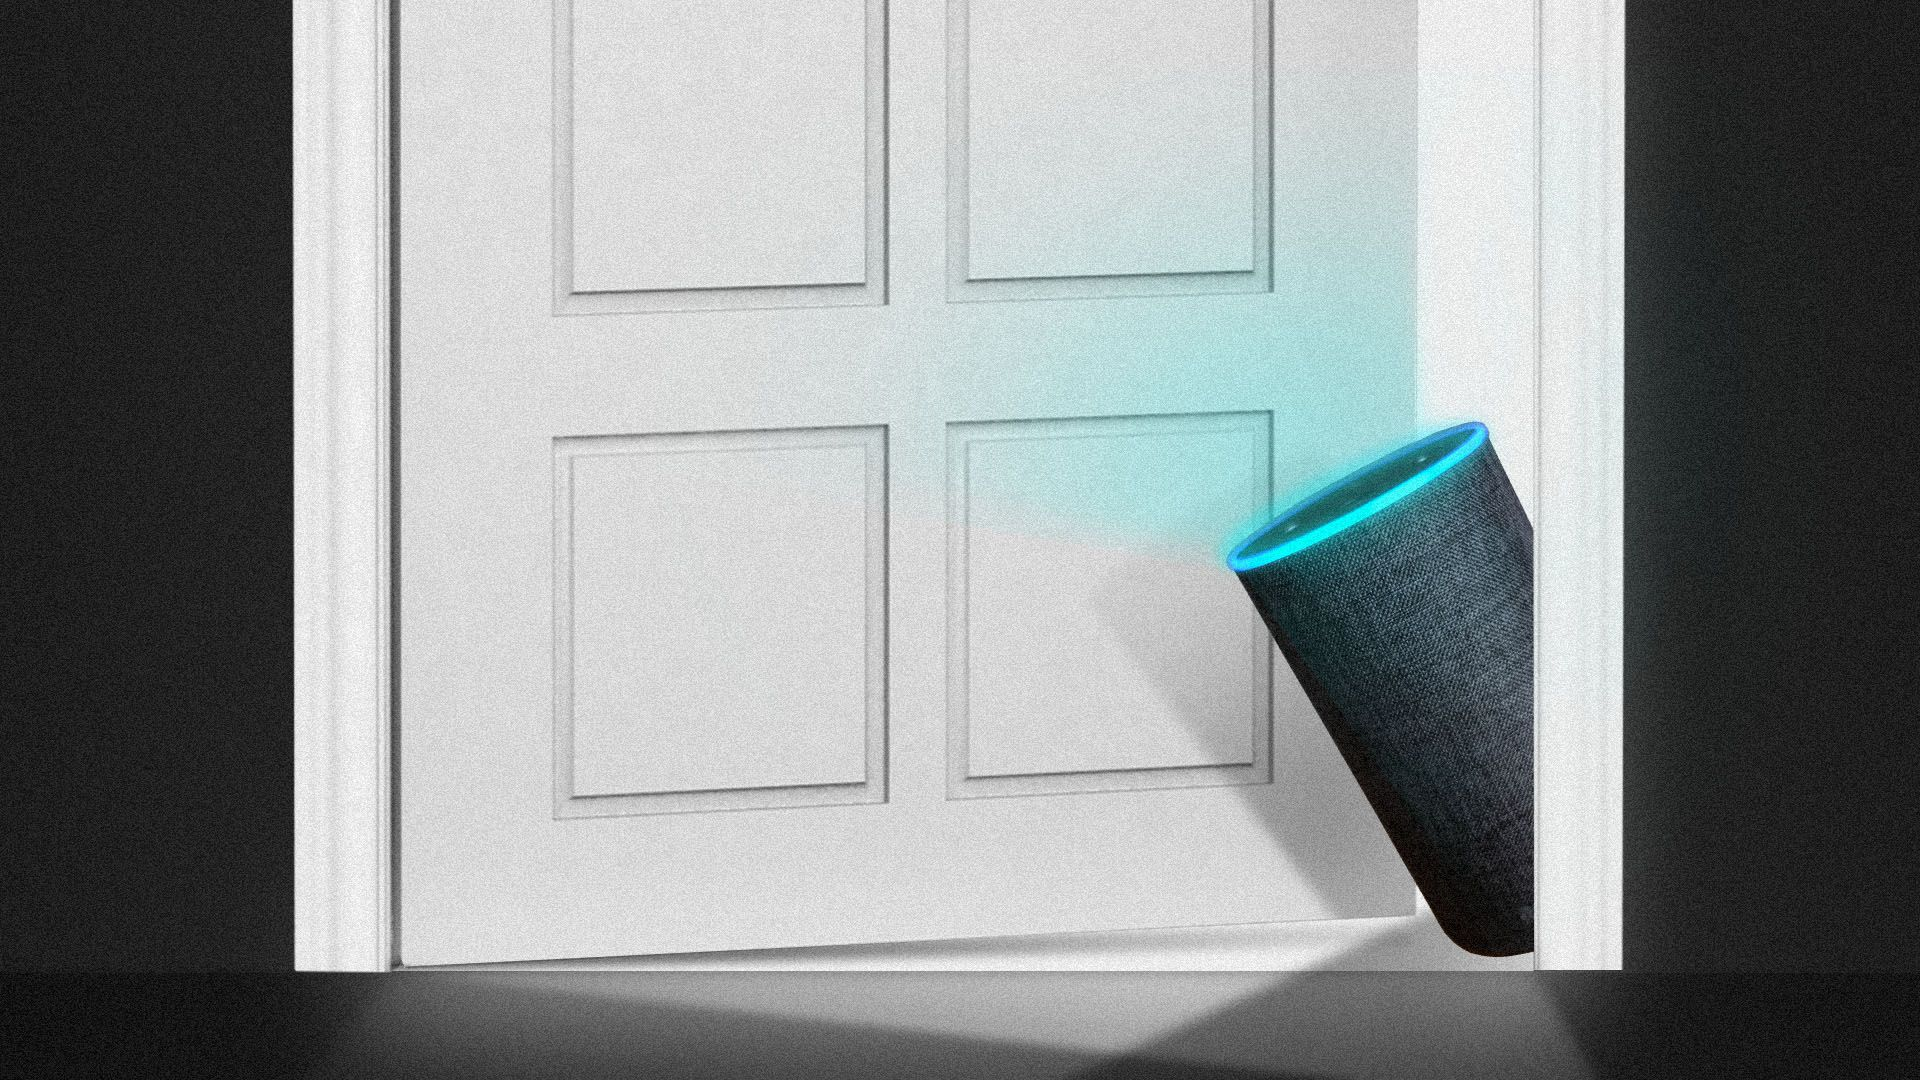 Illustration of an Amazon Echo smart speaker peaking out from behind a door